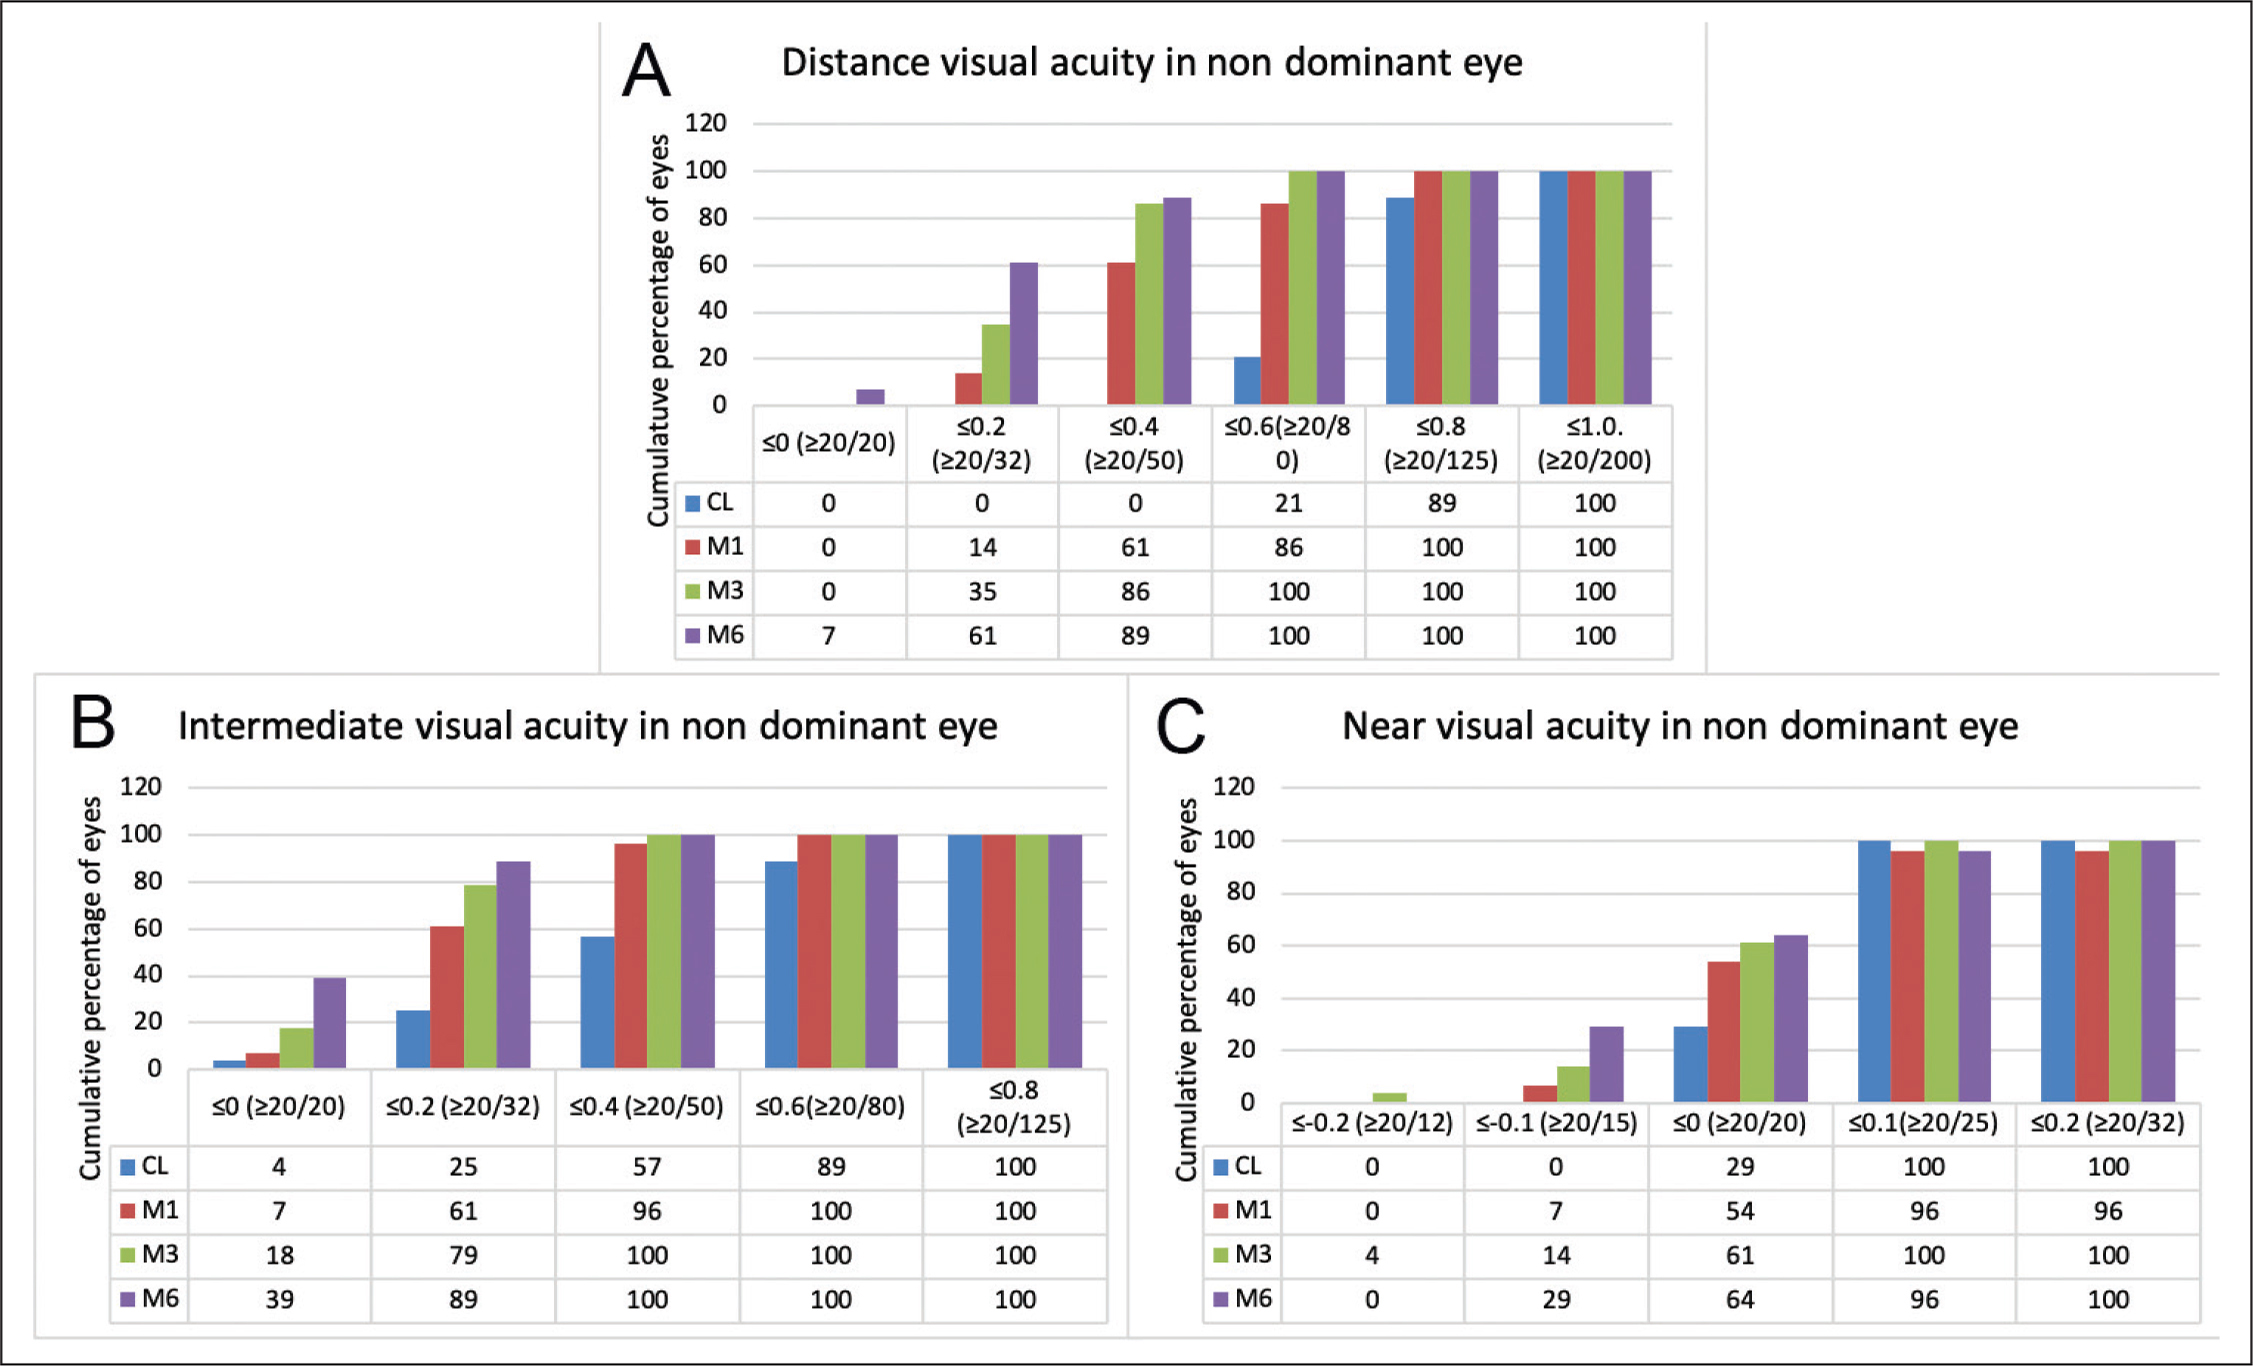 Changes in (A) distance, (B) intermediate, and (C) near visual acuity in the non-dominant eye following surgical treatment at 1 (in red), 3 (in green), and 6 (in purple) months postoperatively compared with contact lens wear (CL) simulating monovision preoperatively (in blue).